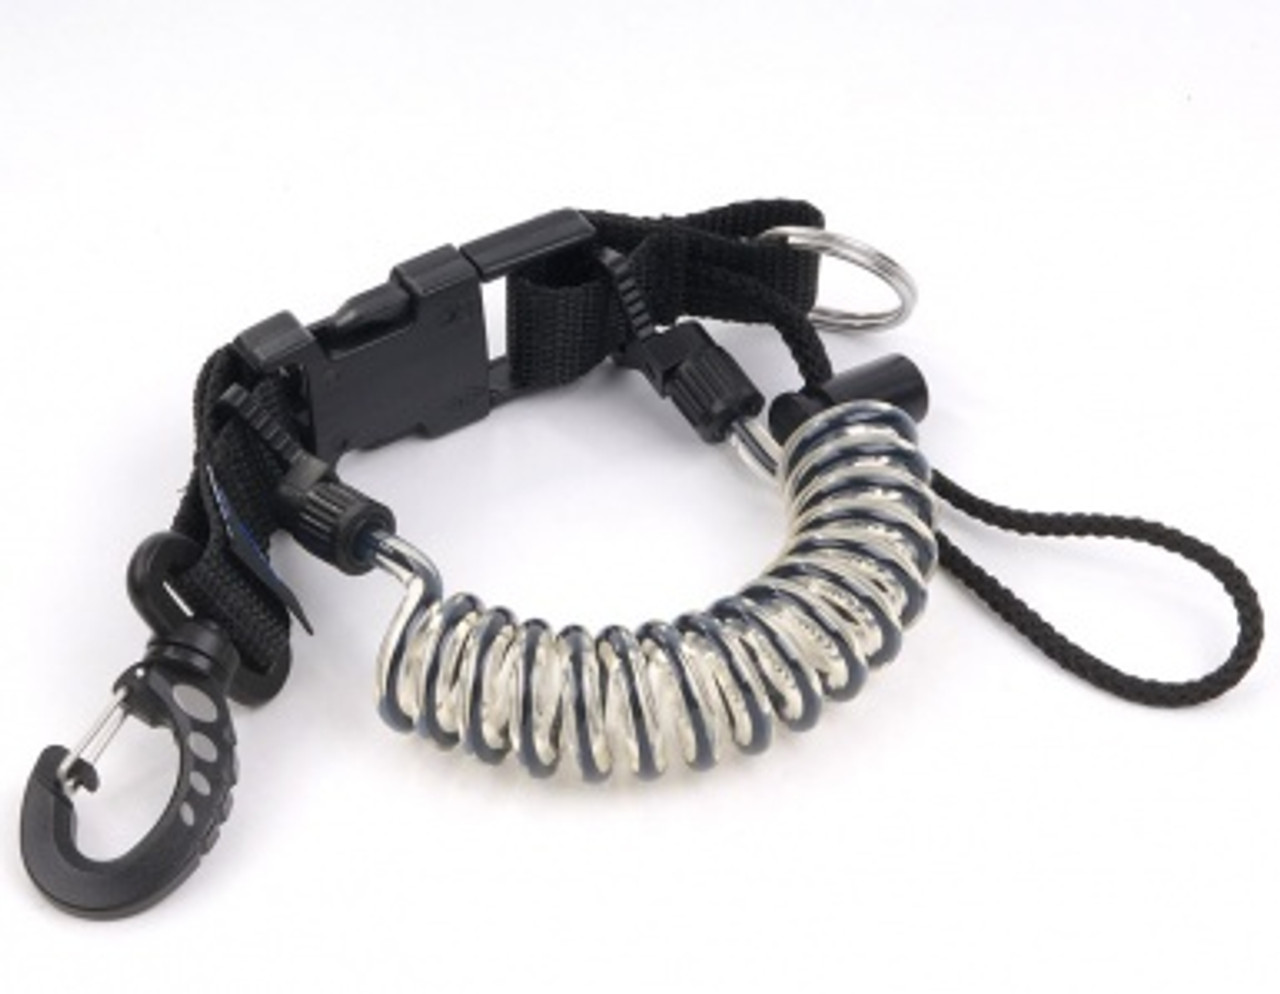 Oceanic-Coiled-Lanyard__61438.1539914768